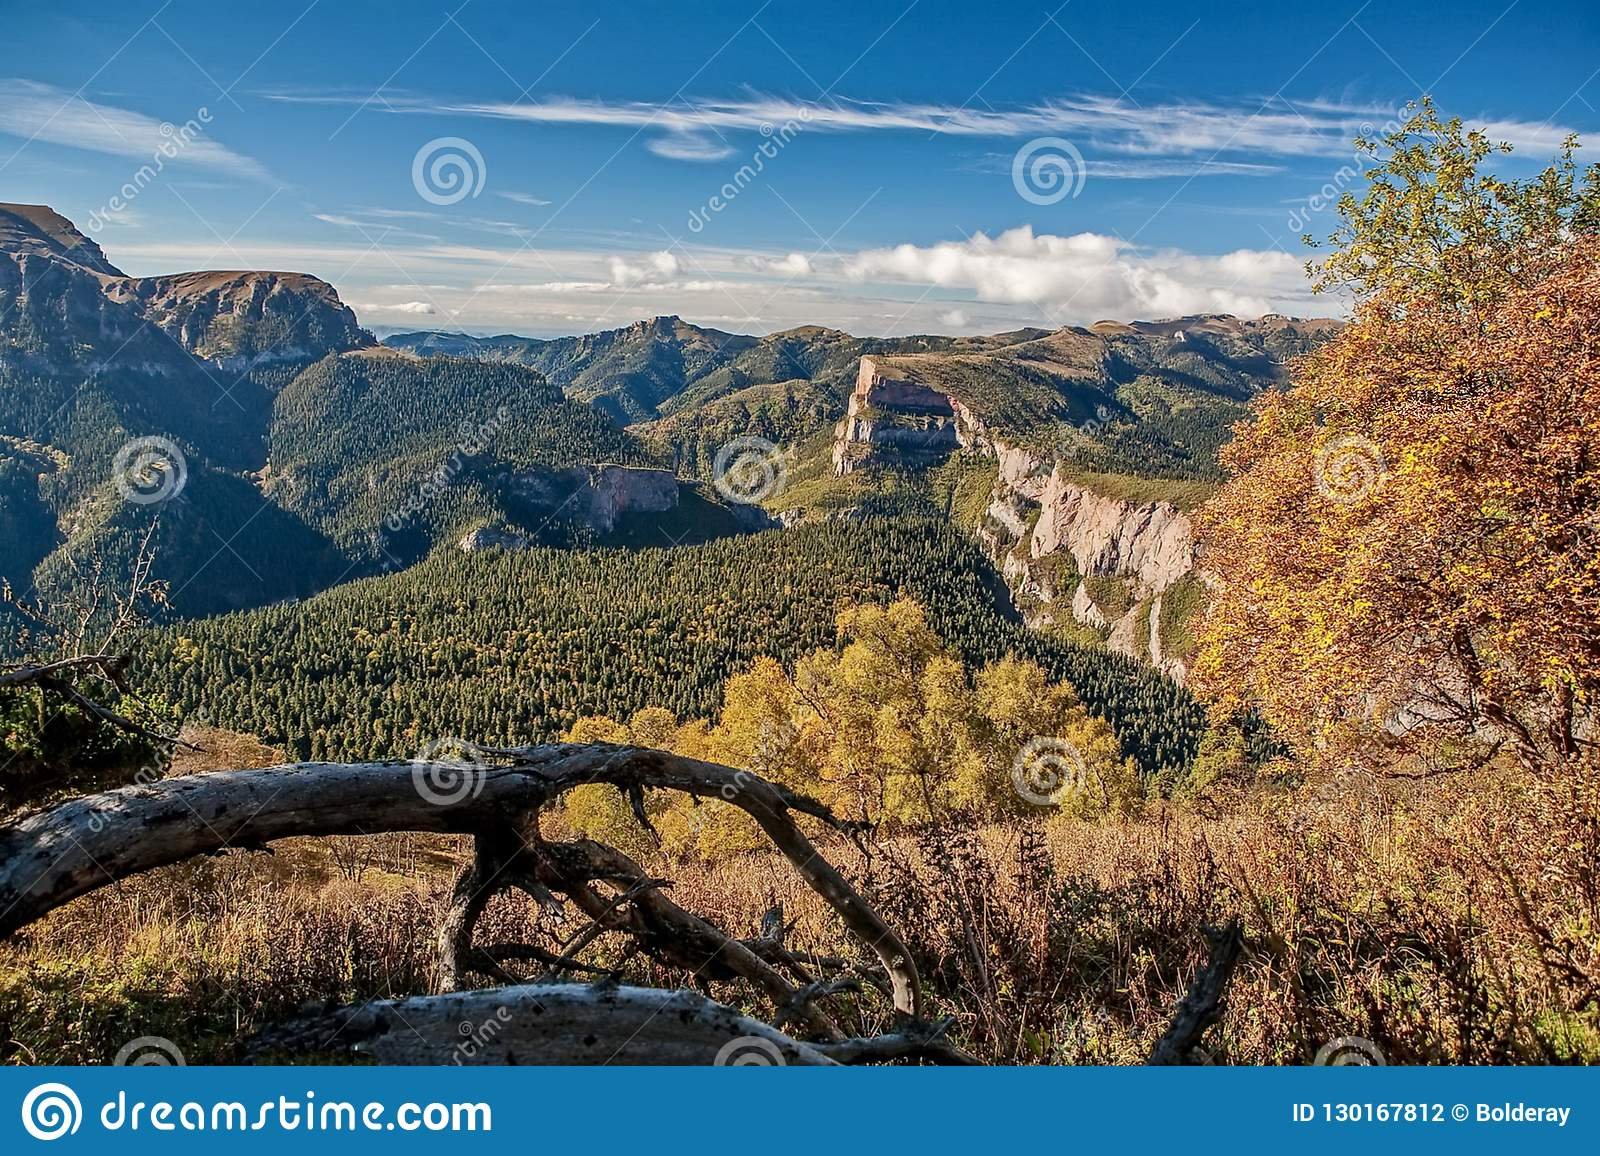 Canyon eastern slope of the Sikhote-Alin Range. Sikhote Alin, a mountainous country in the Far East